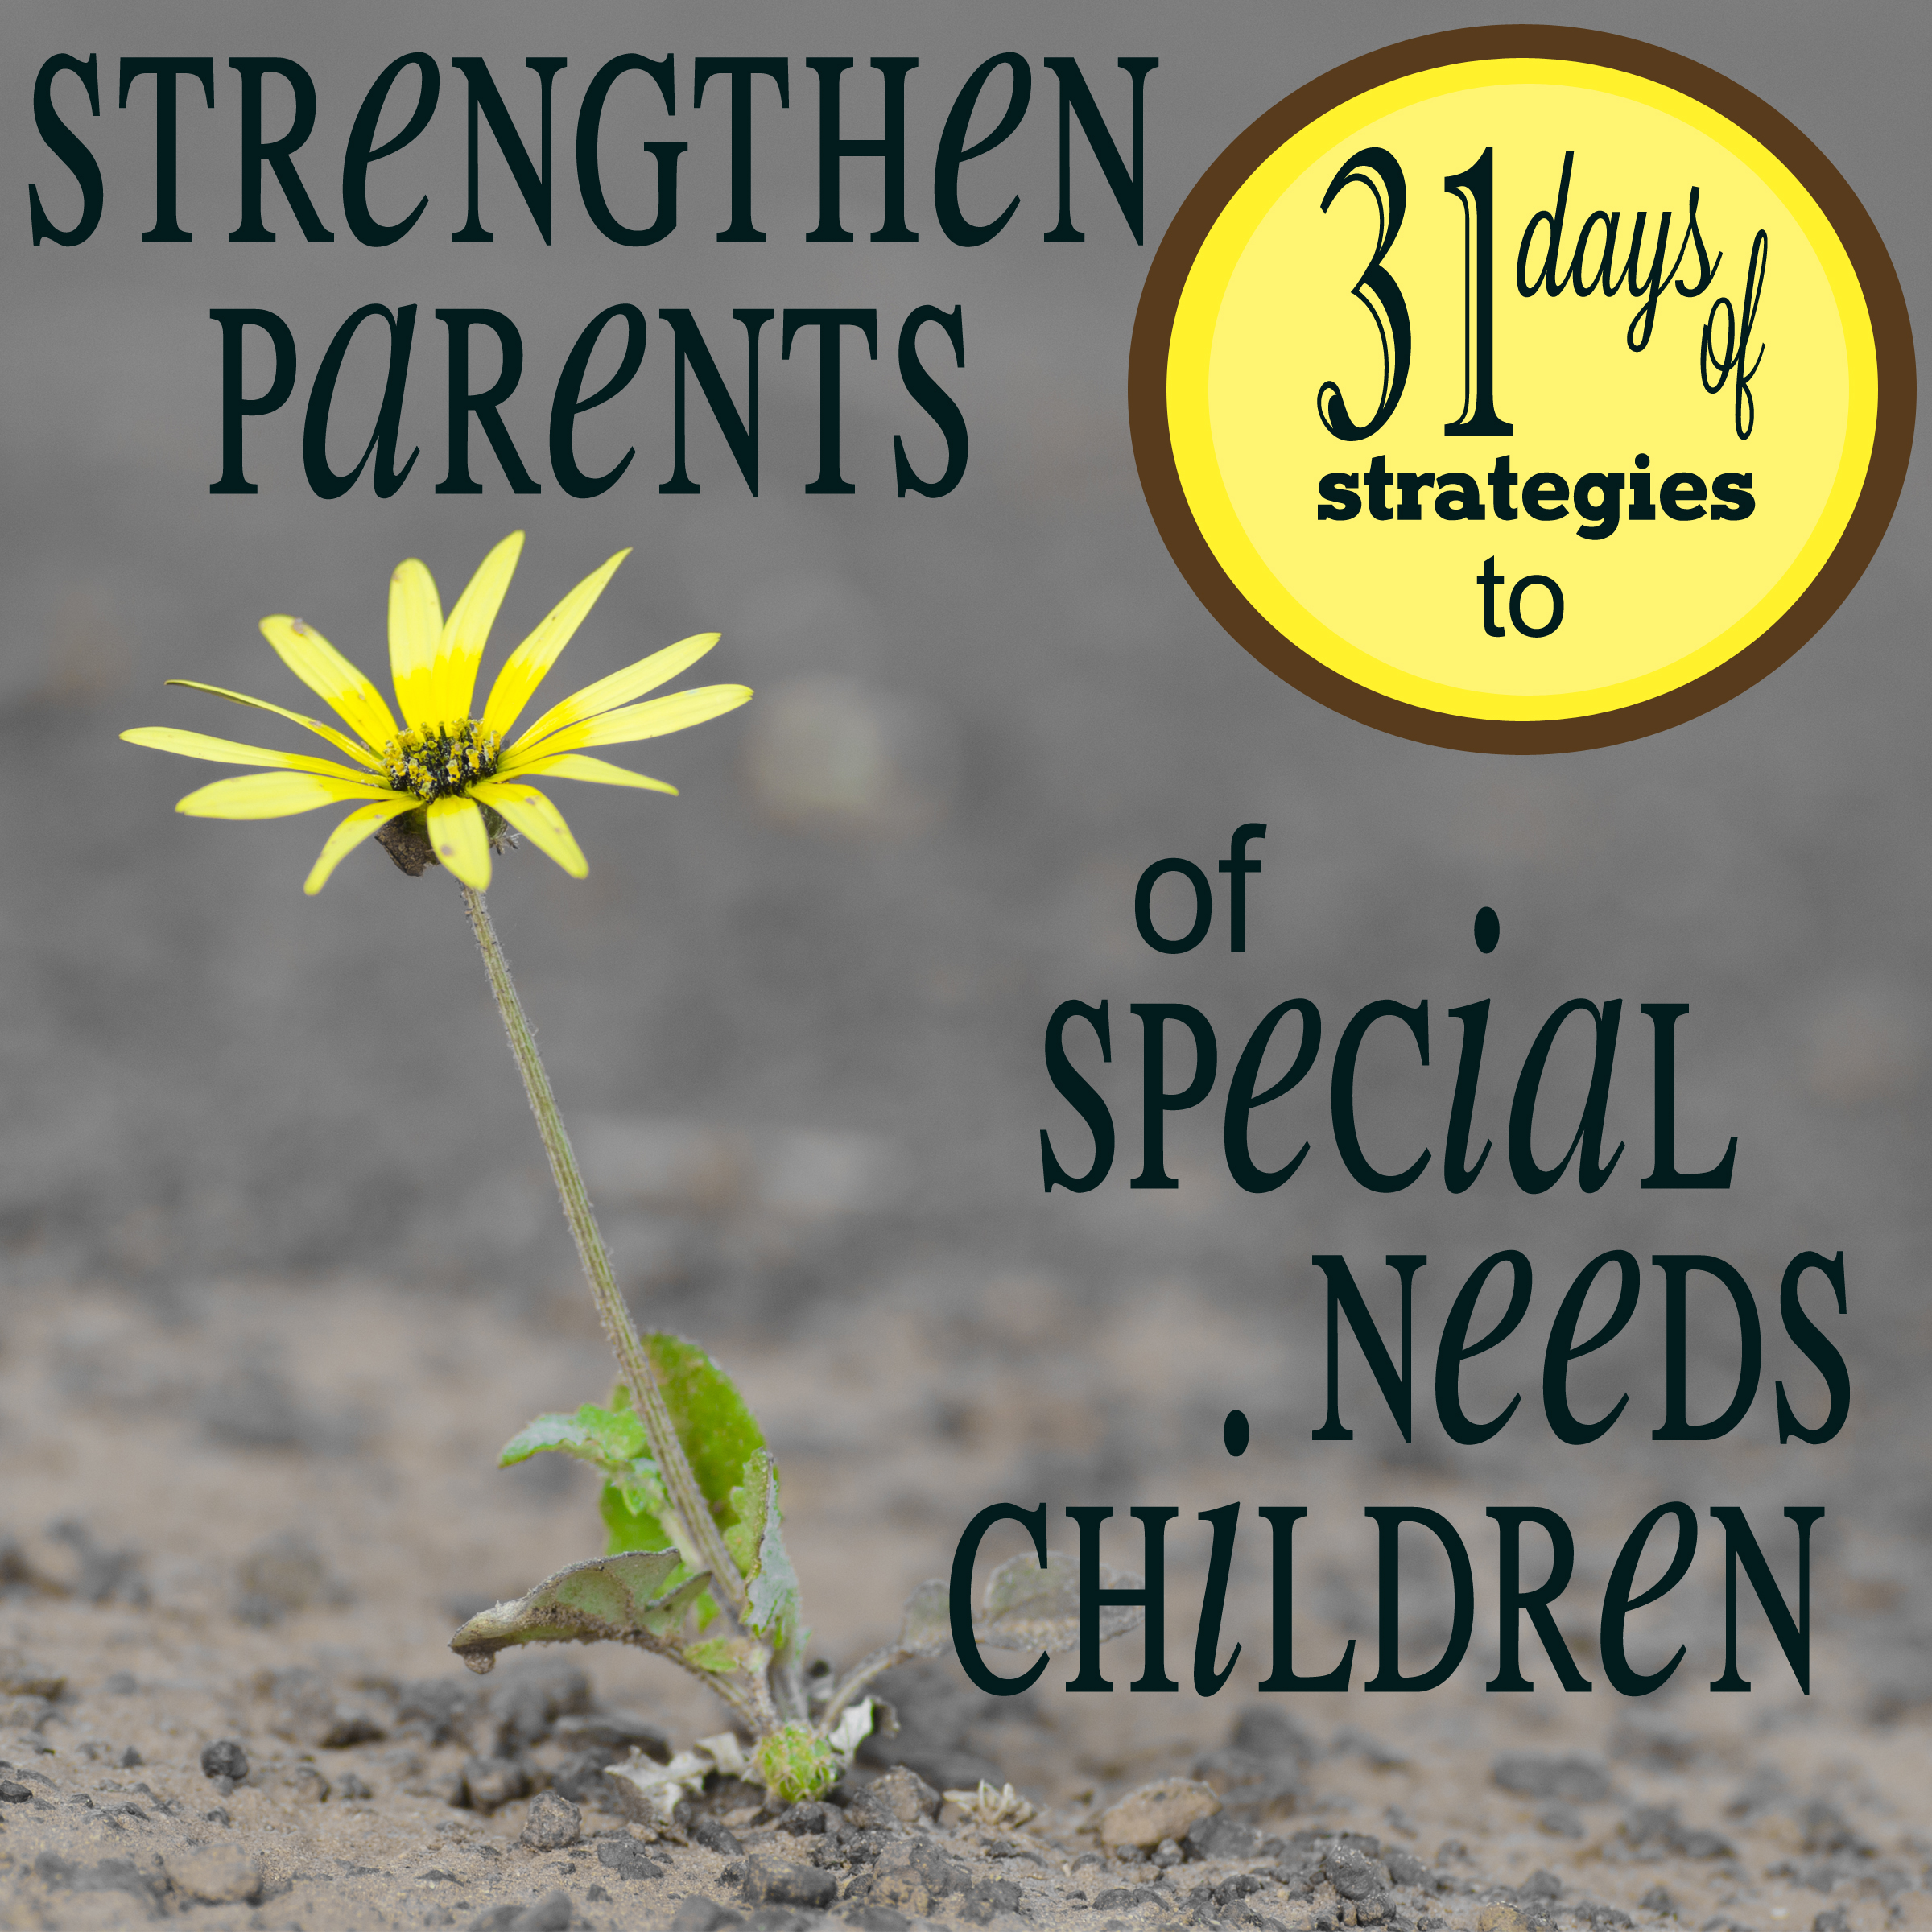 Strategies to Strengthen Parents of Special Needs Parents to do More than J